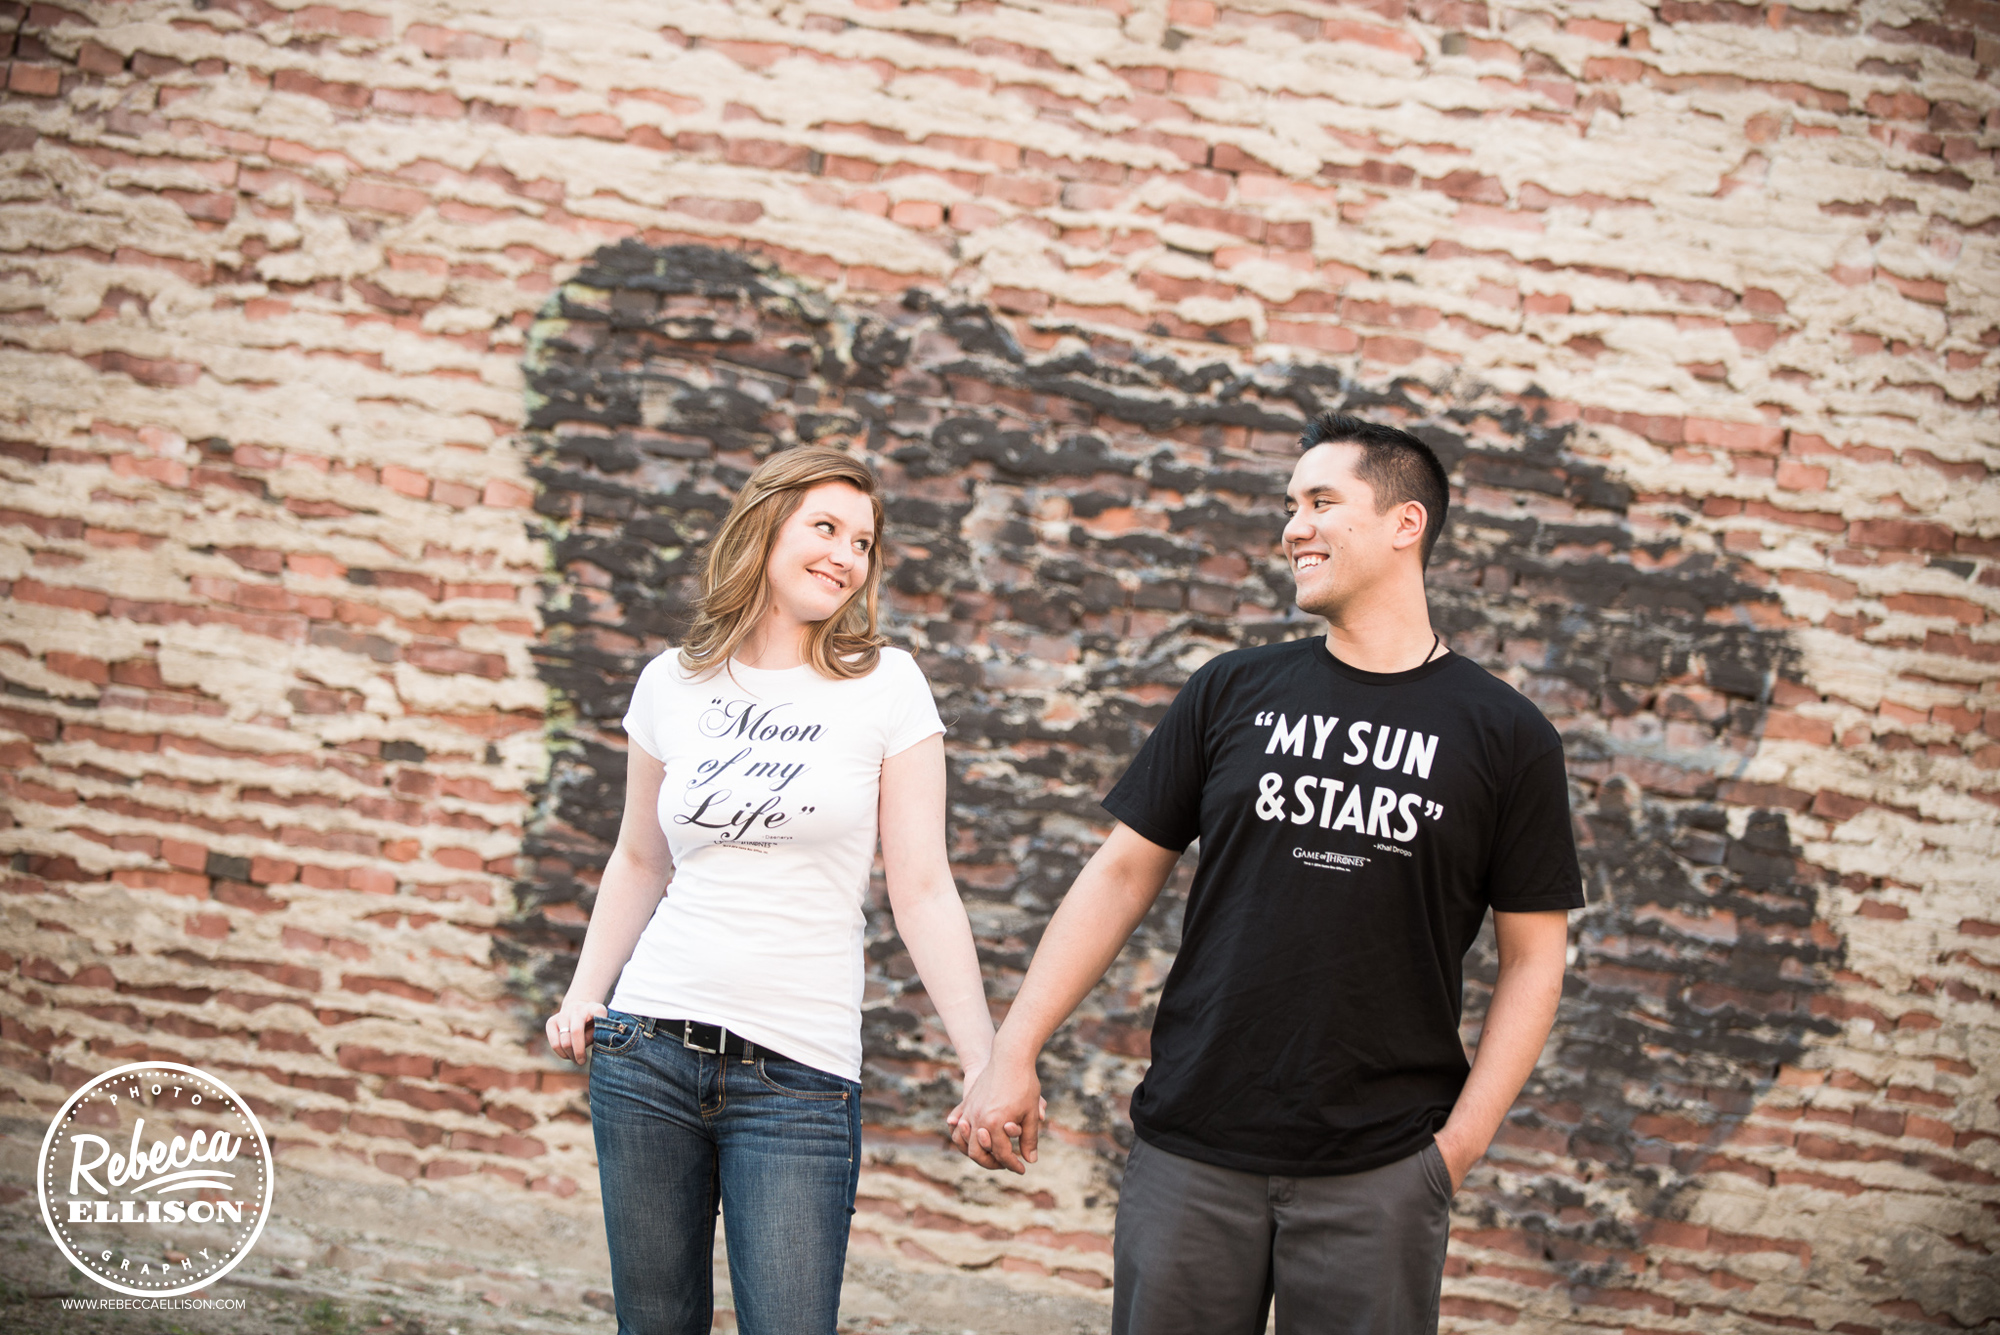 Game of Thrones t-shirts during an outdoor engagement photo session in Ballard photographed by Ballard Engagement photographer Rebecca Ellison